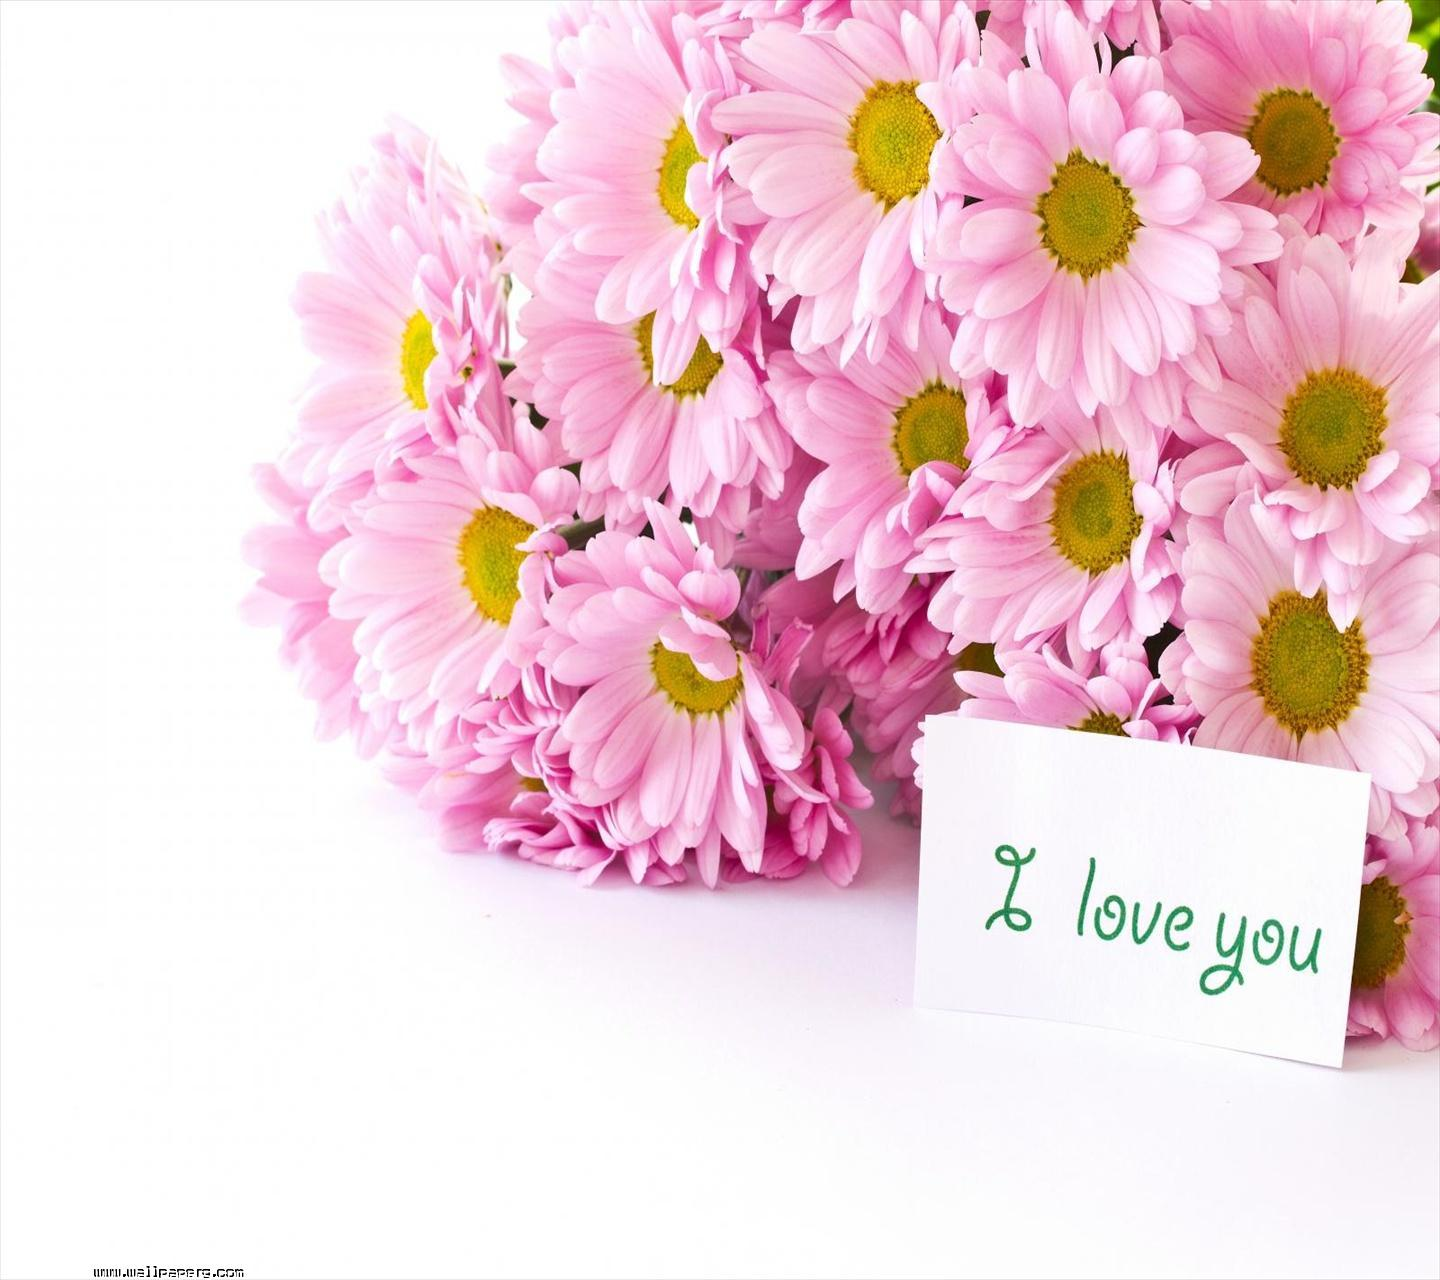 Download I Love You At Your Mobile Cell Phone | Apps ...